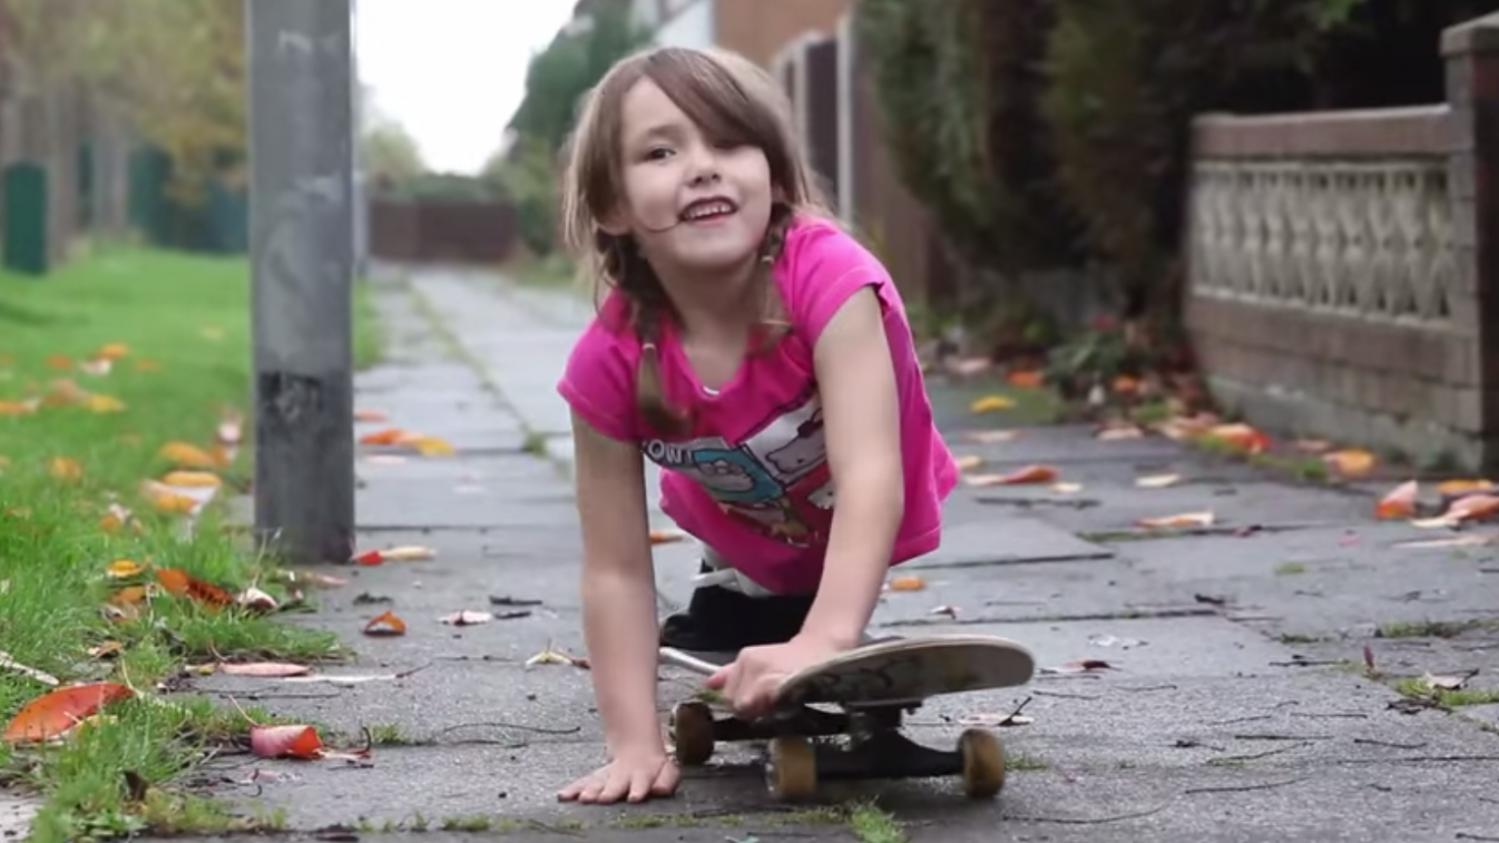 video cette petite fille fait du skateboard malgr l 39 amputation de ses deux jambes. Black Bedroom Furniture Sets. Home Design Ideas